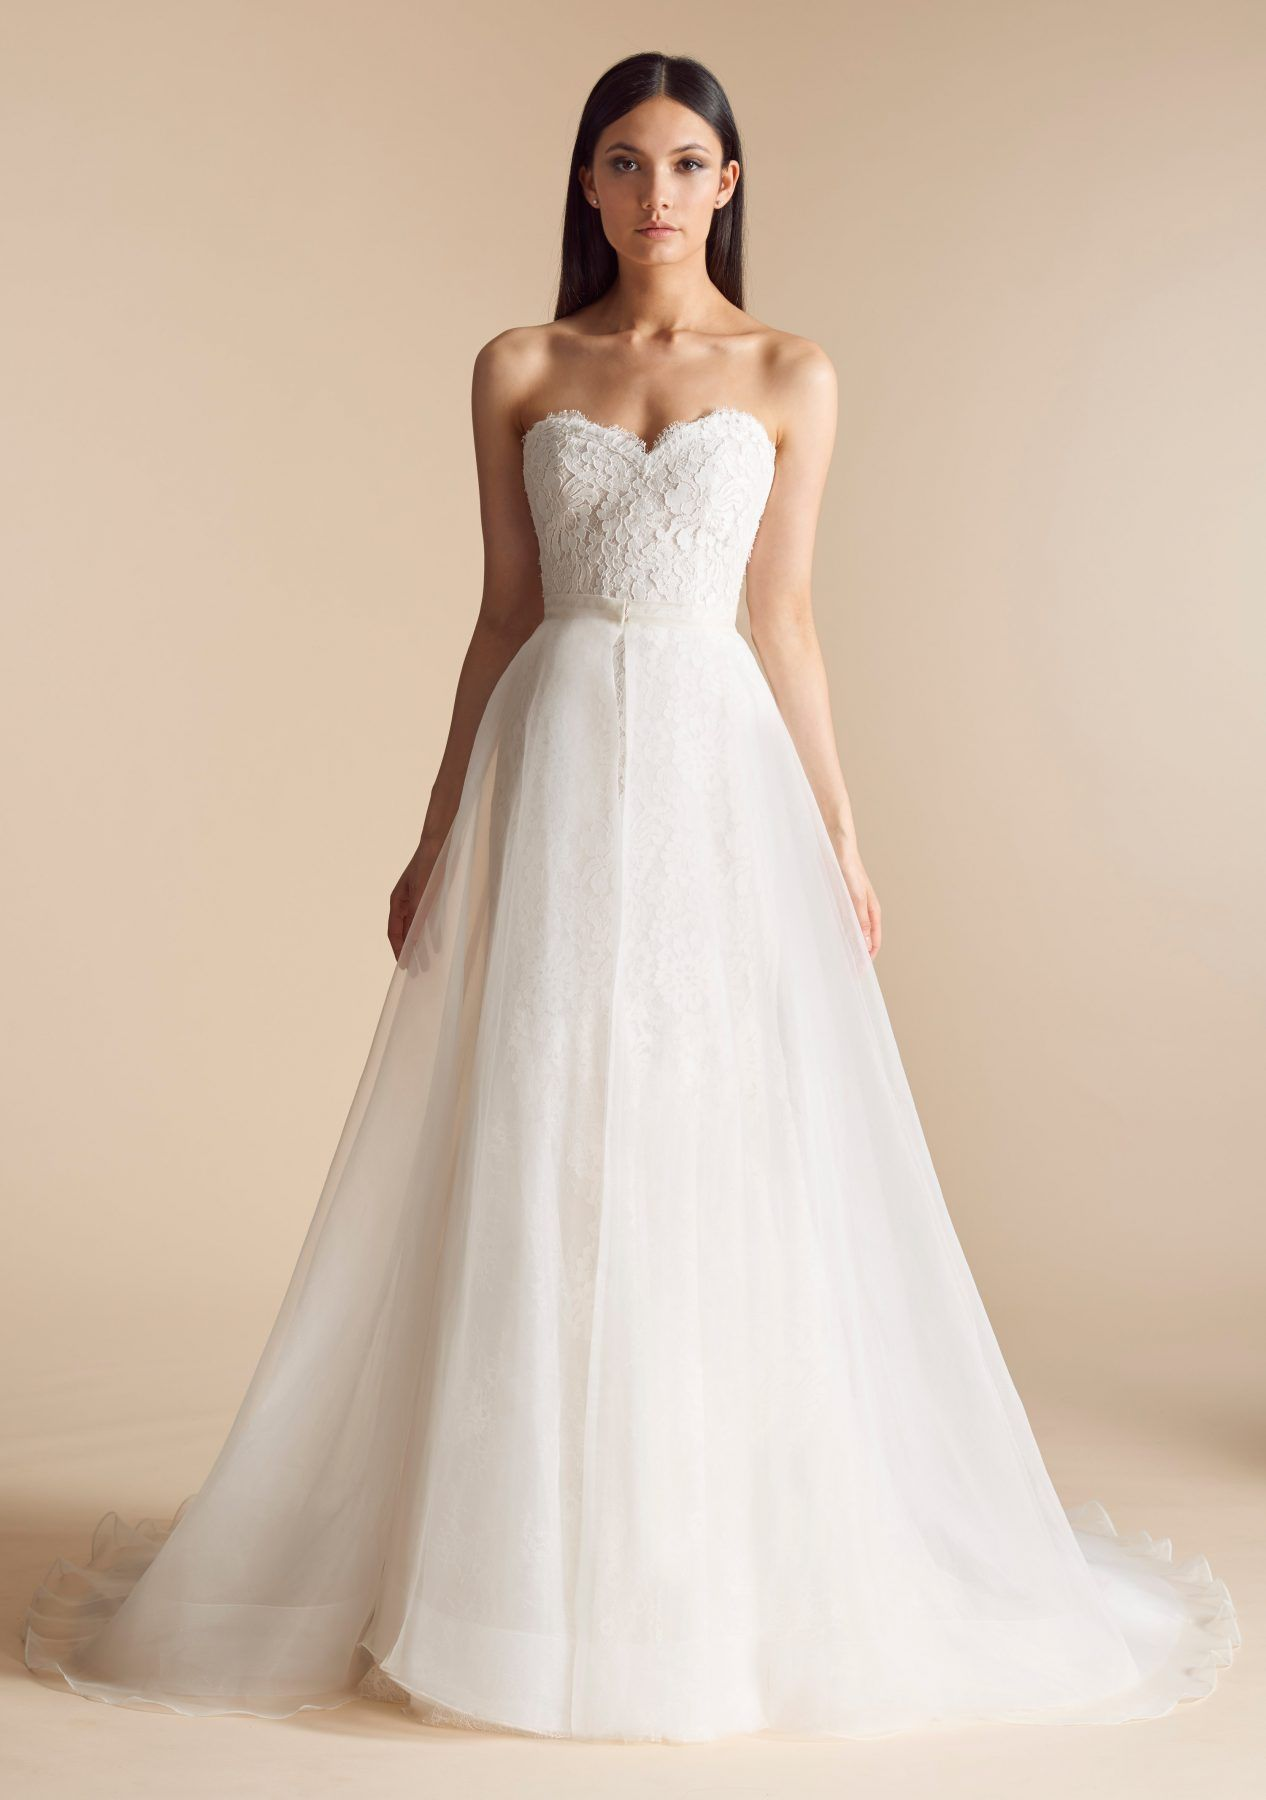 Sweetheart neck lace bodice tulle overskirt fit and flare wedding